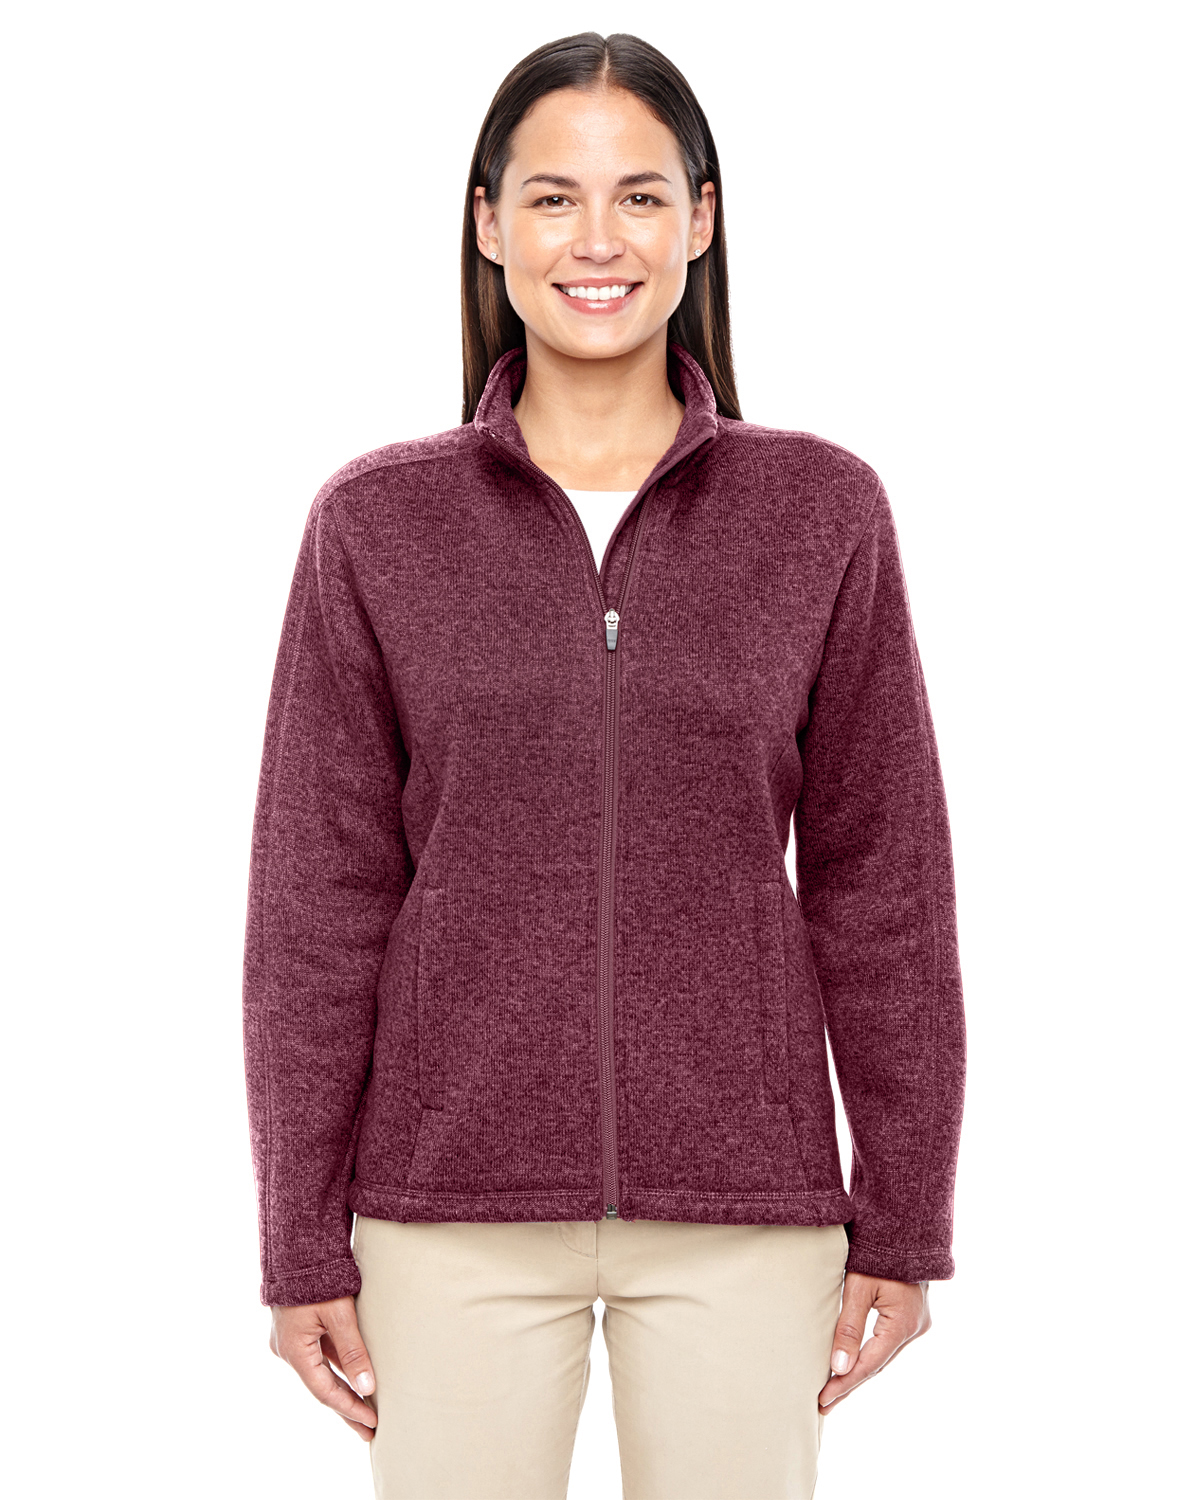 Devon & Jones - DG793W Ladies' Bristol Full-Zip Sweater Fleece Jacket